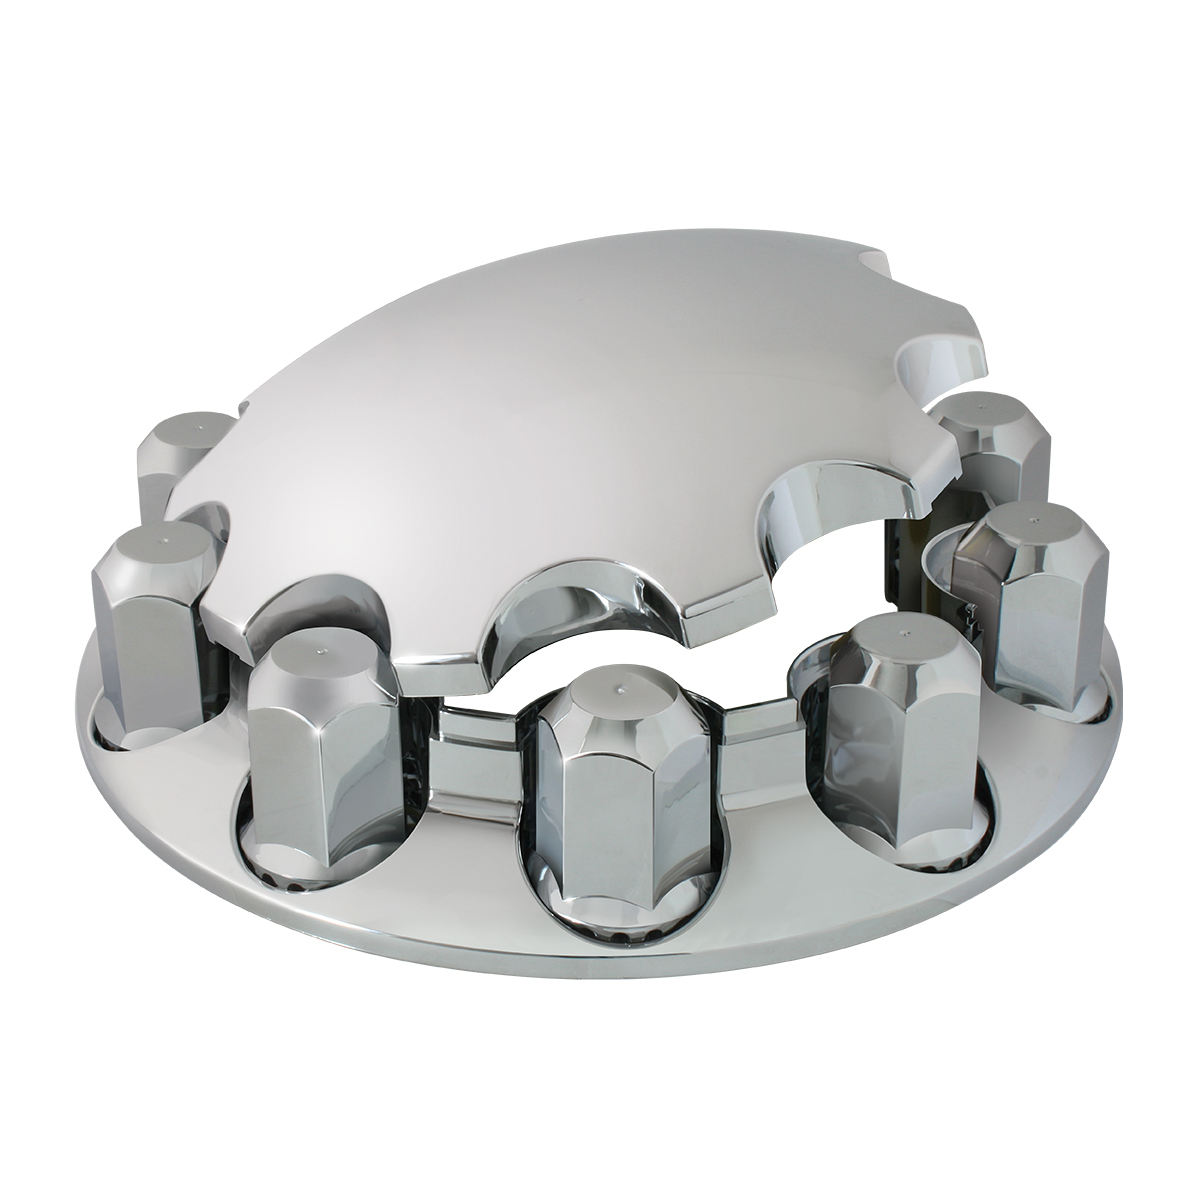 40181 Chrome Plastic ABS Front Axle Cover Set with Locking Tabs & Standard Hub Cap